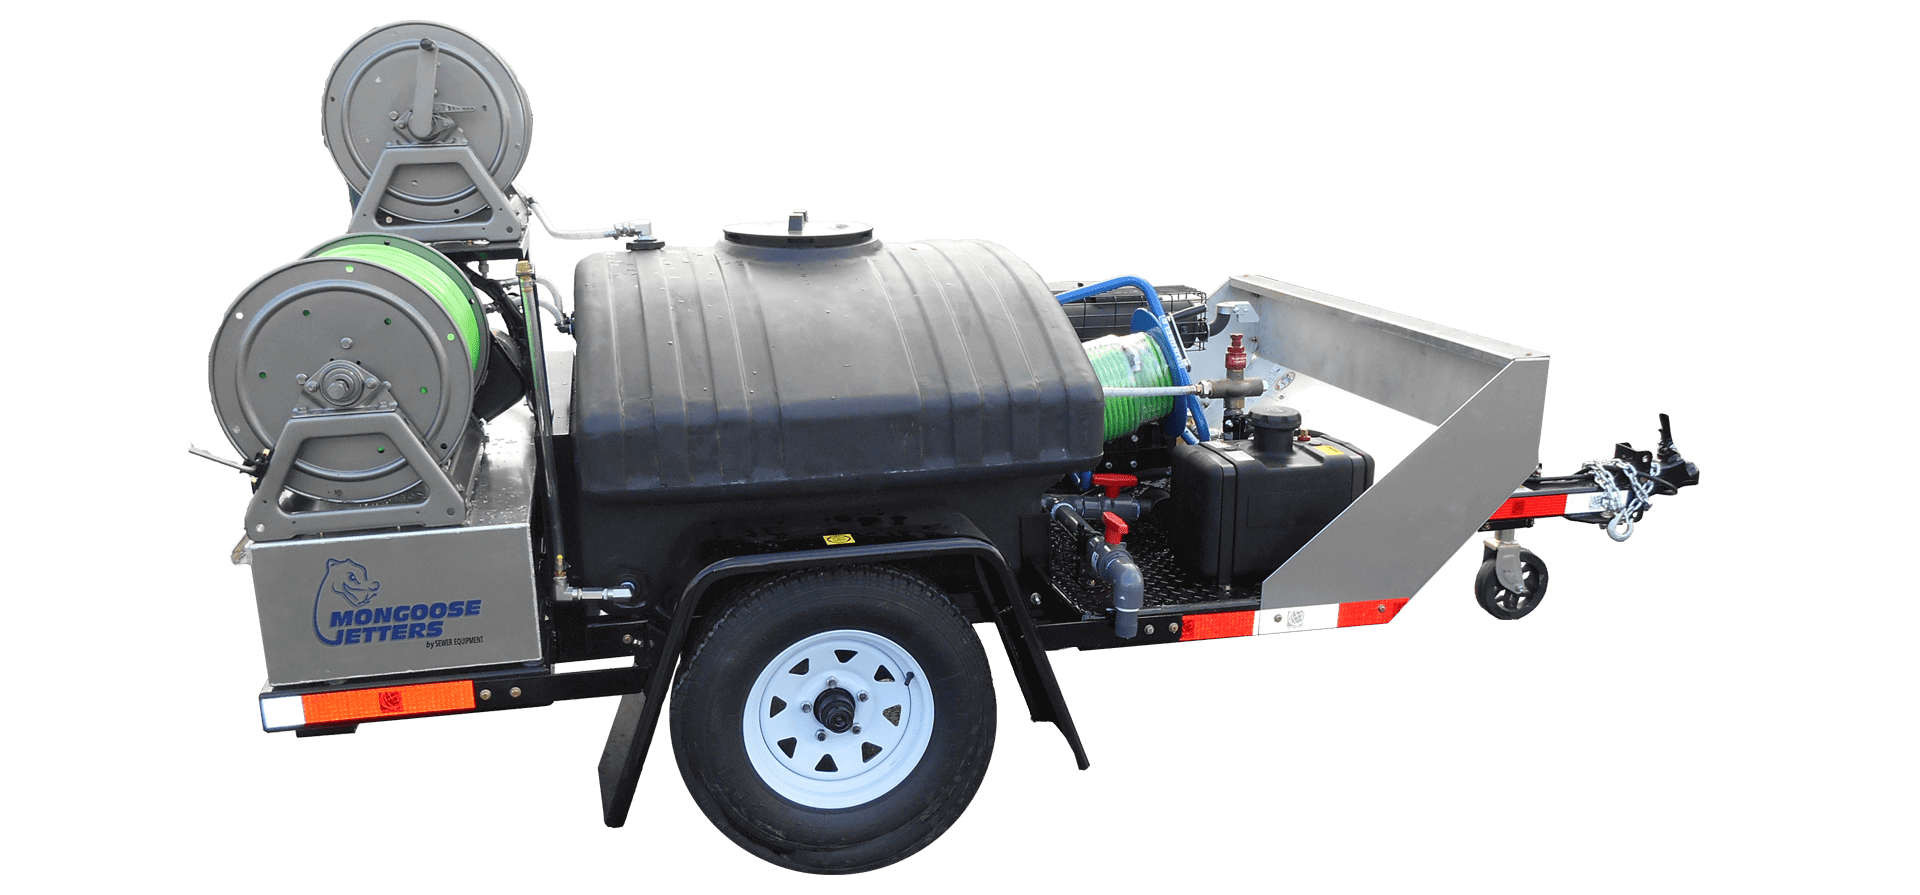 Model 123 Sewer Cleaner, Sewer Cleaner Trailer, Mongoose Jetters